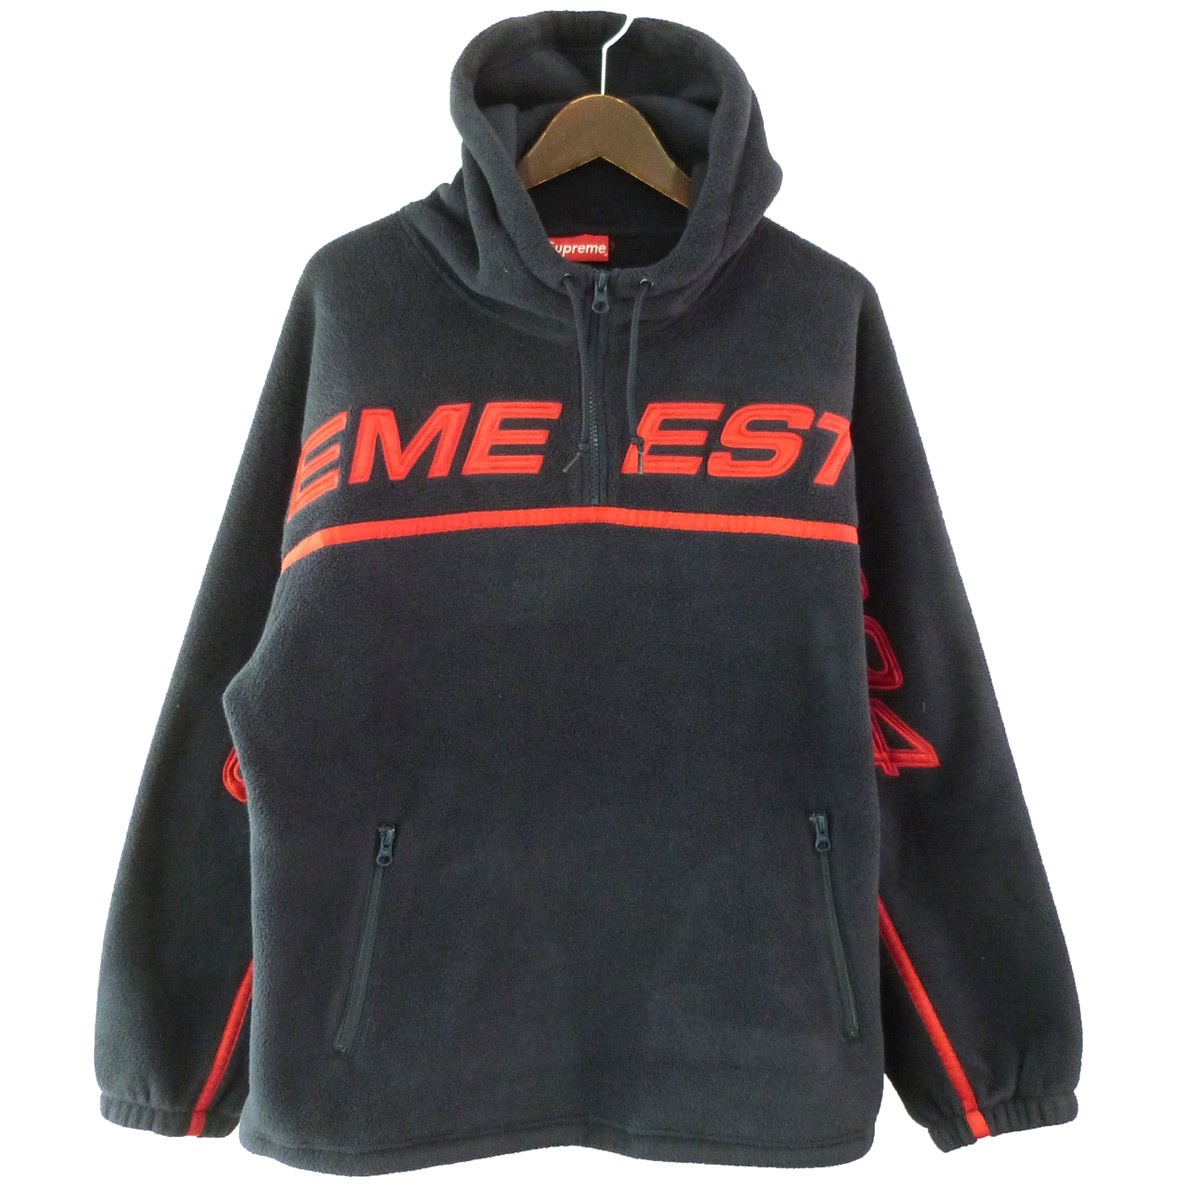 【中古】SUPREME 19AW「Polartec HalfZip Hooded Sweatshirt」ハーフZIPパーカー ネイビー サイズ:M 【120320】(シュプリーム)